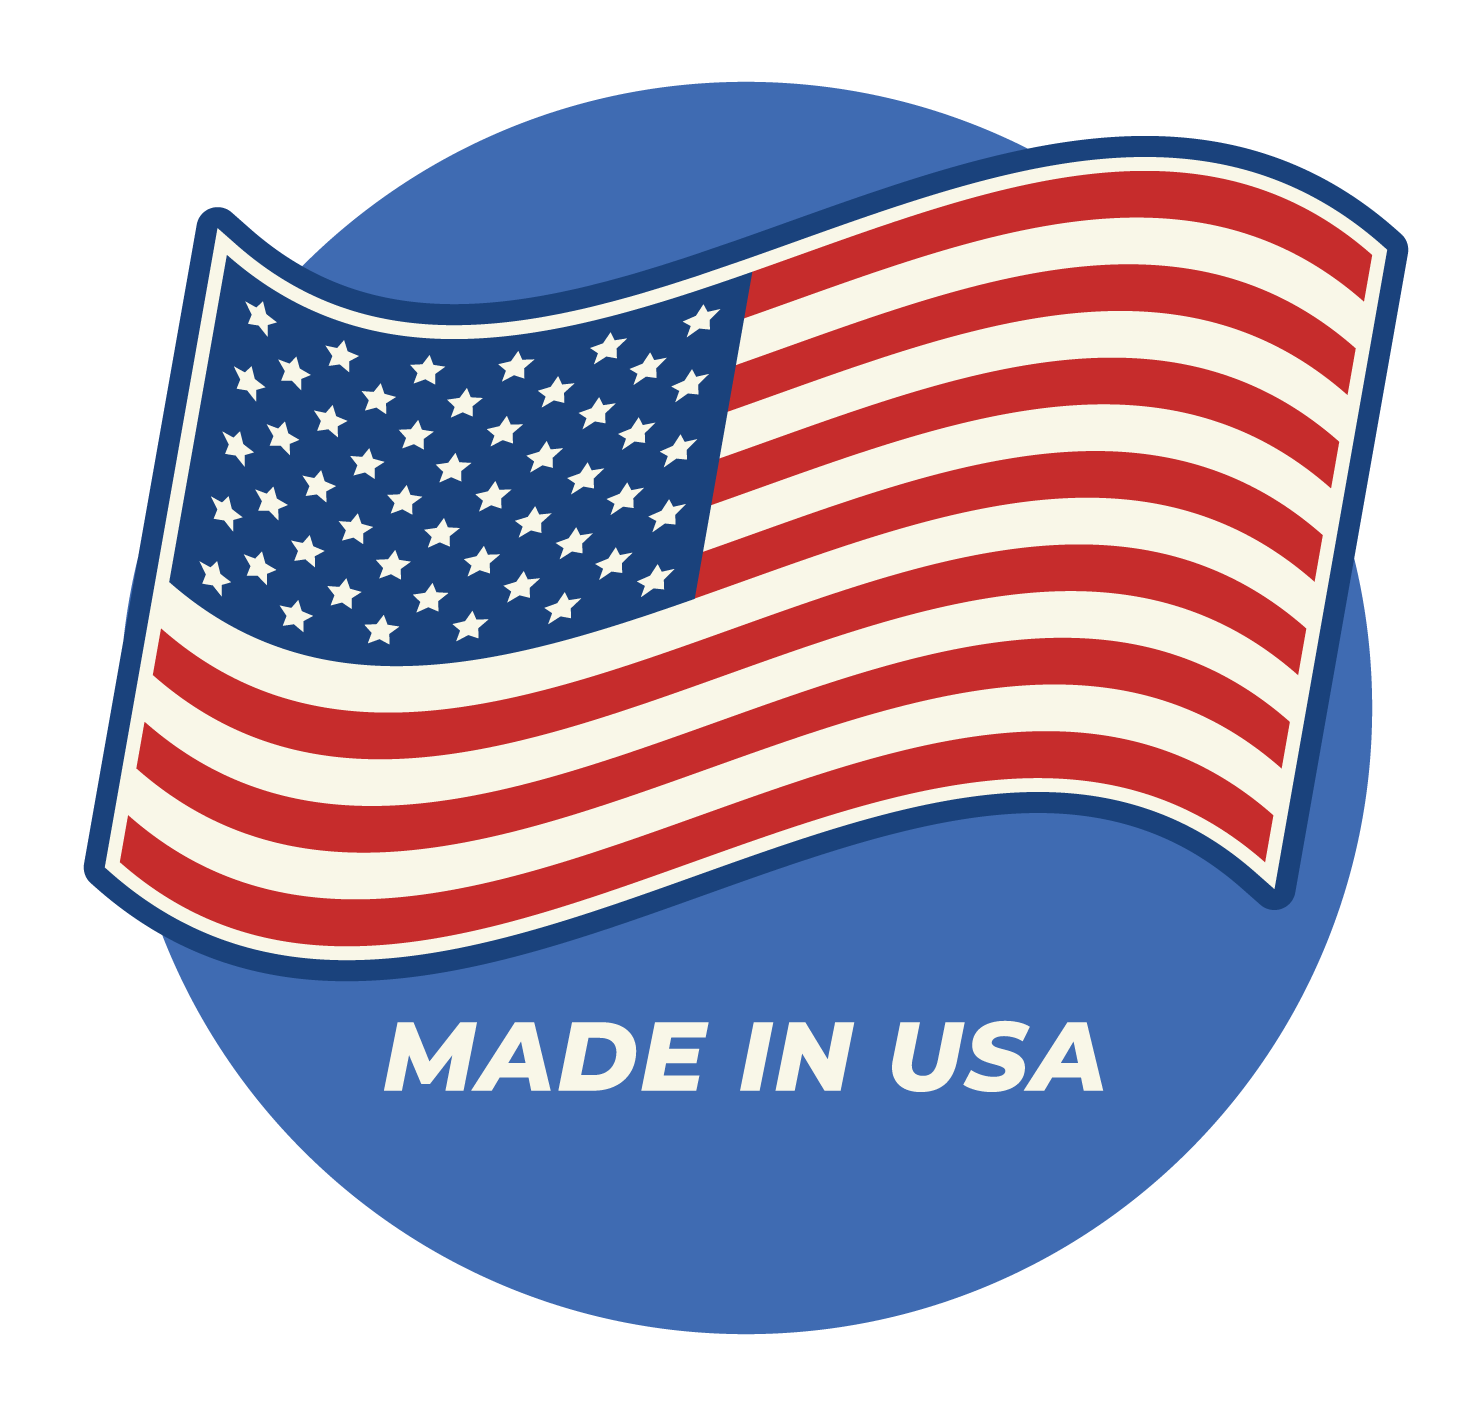 made in usa, htk, handy safety, knife